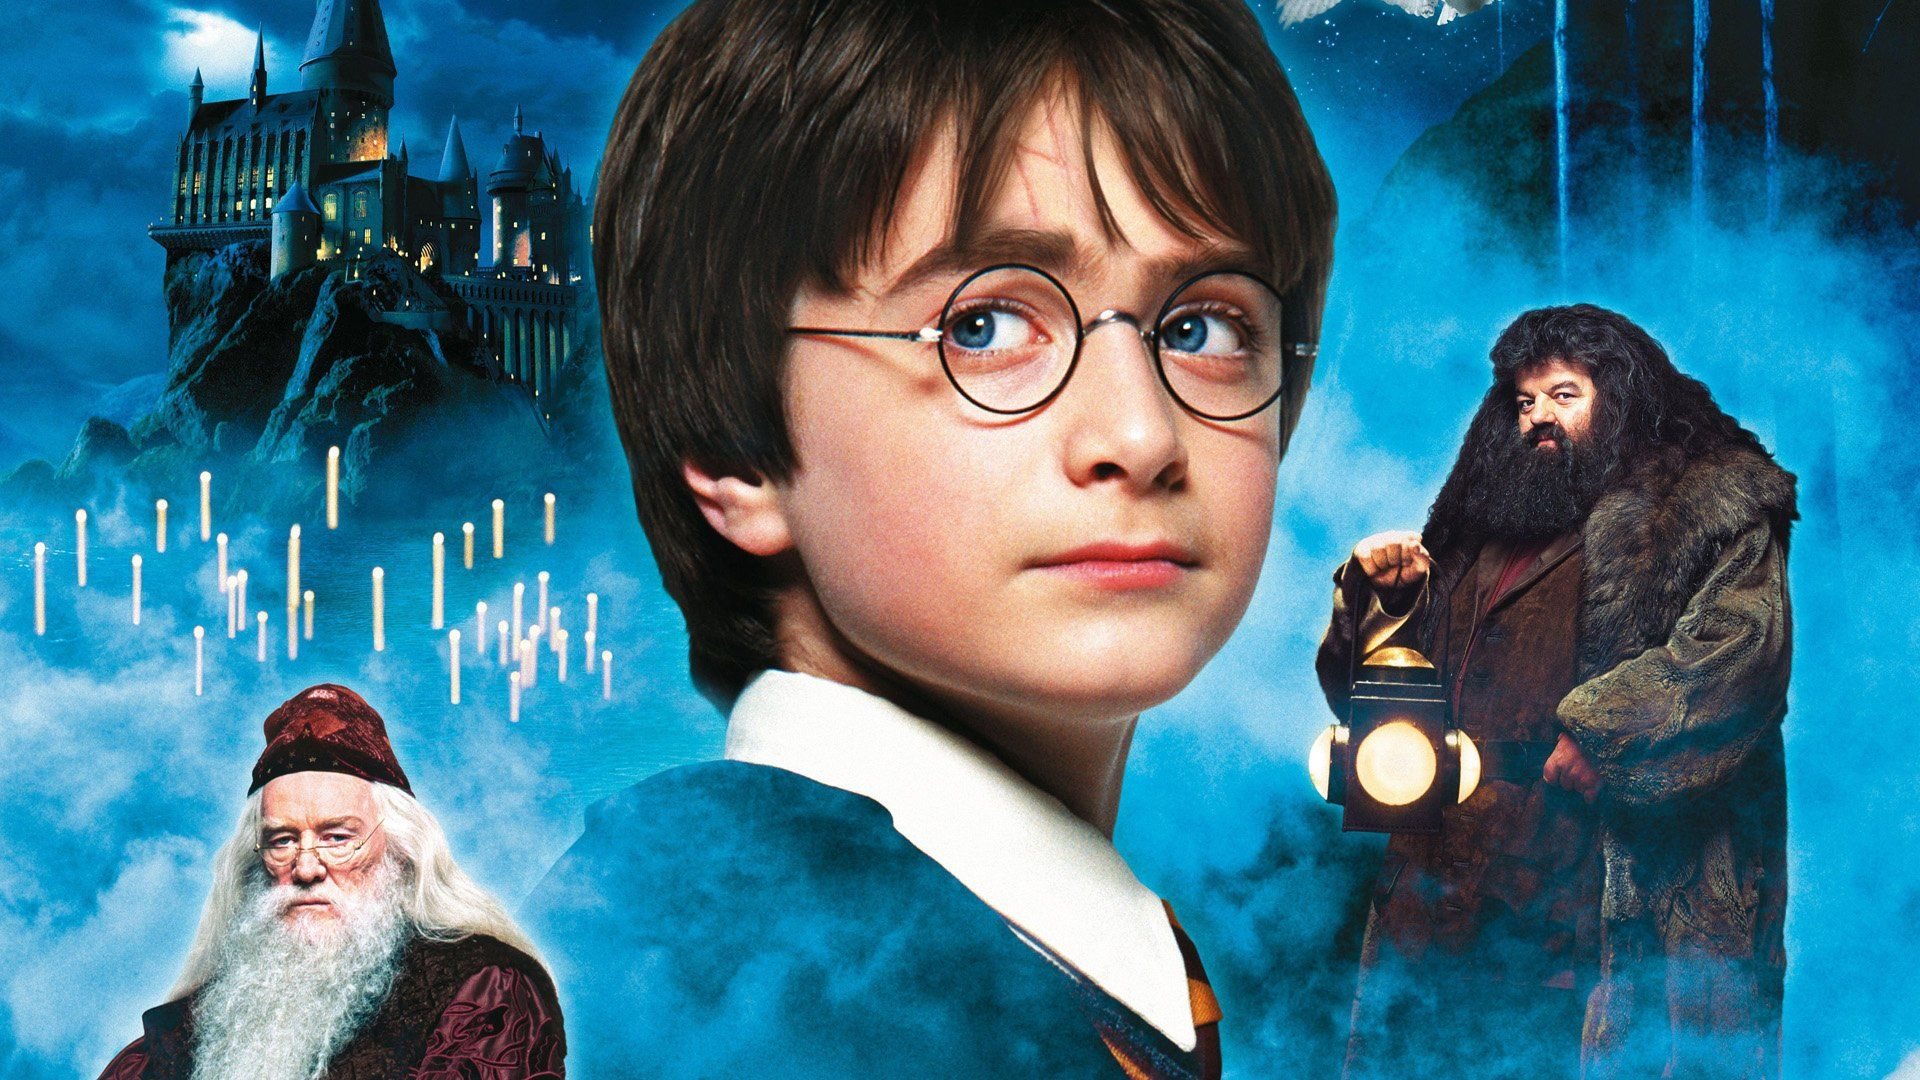 Harry Potter All Characters Wallpapers - Top Free Harry Potter All